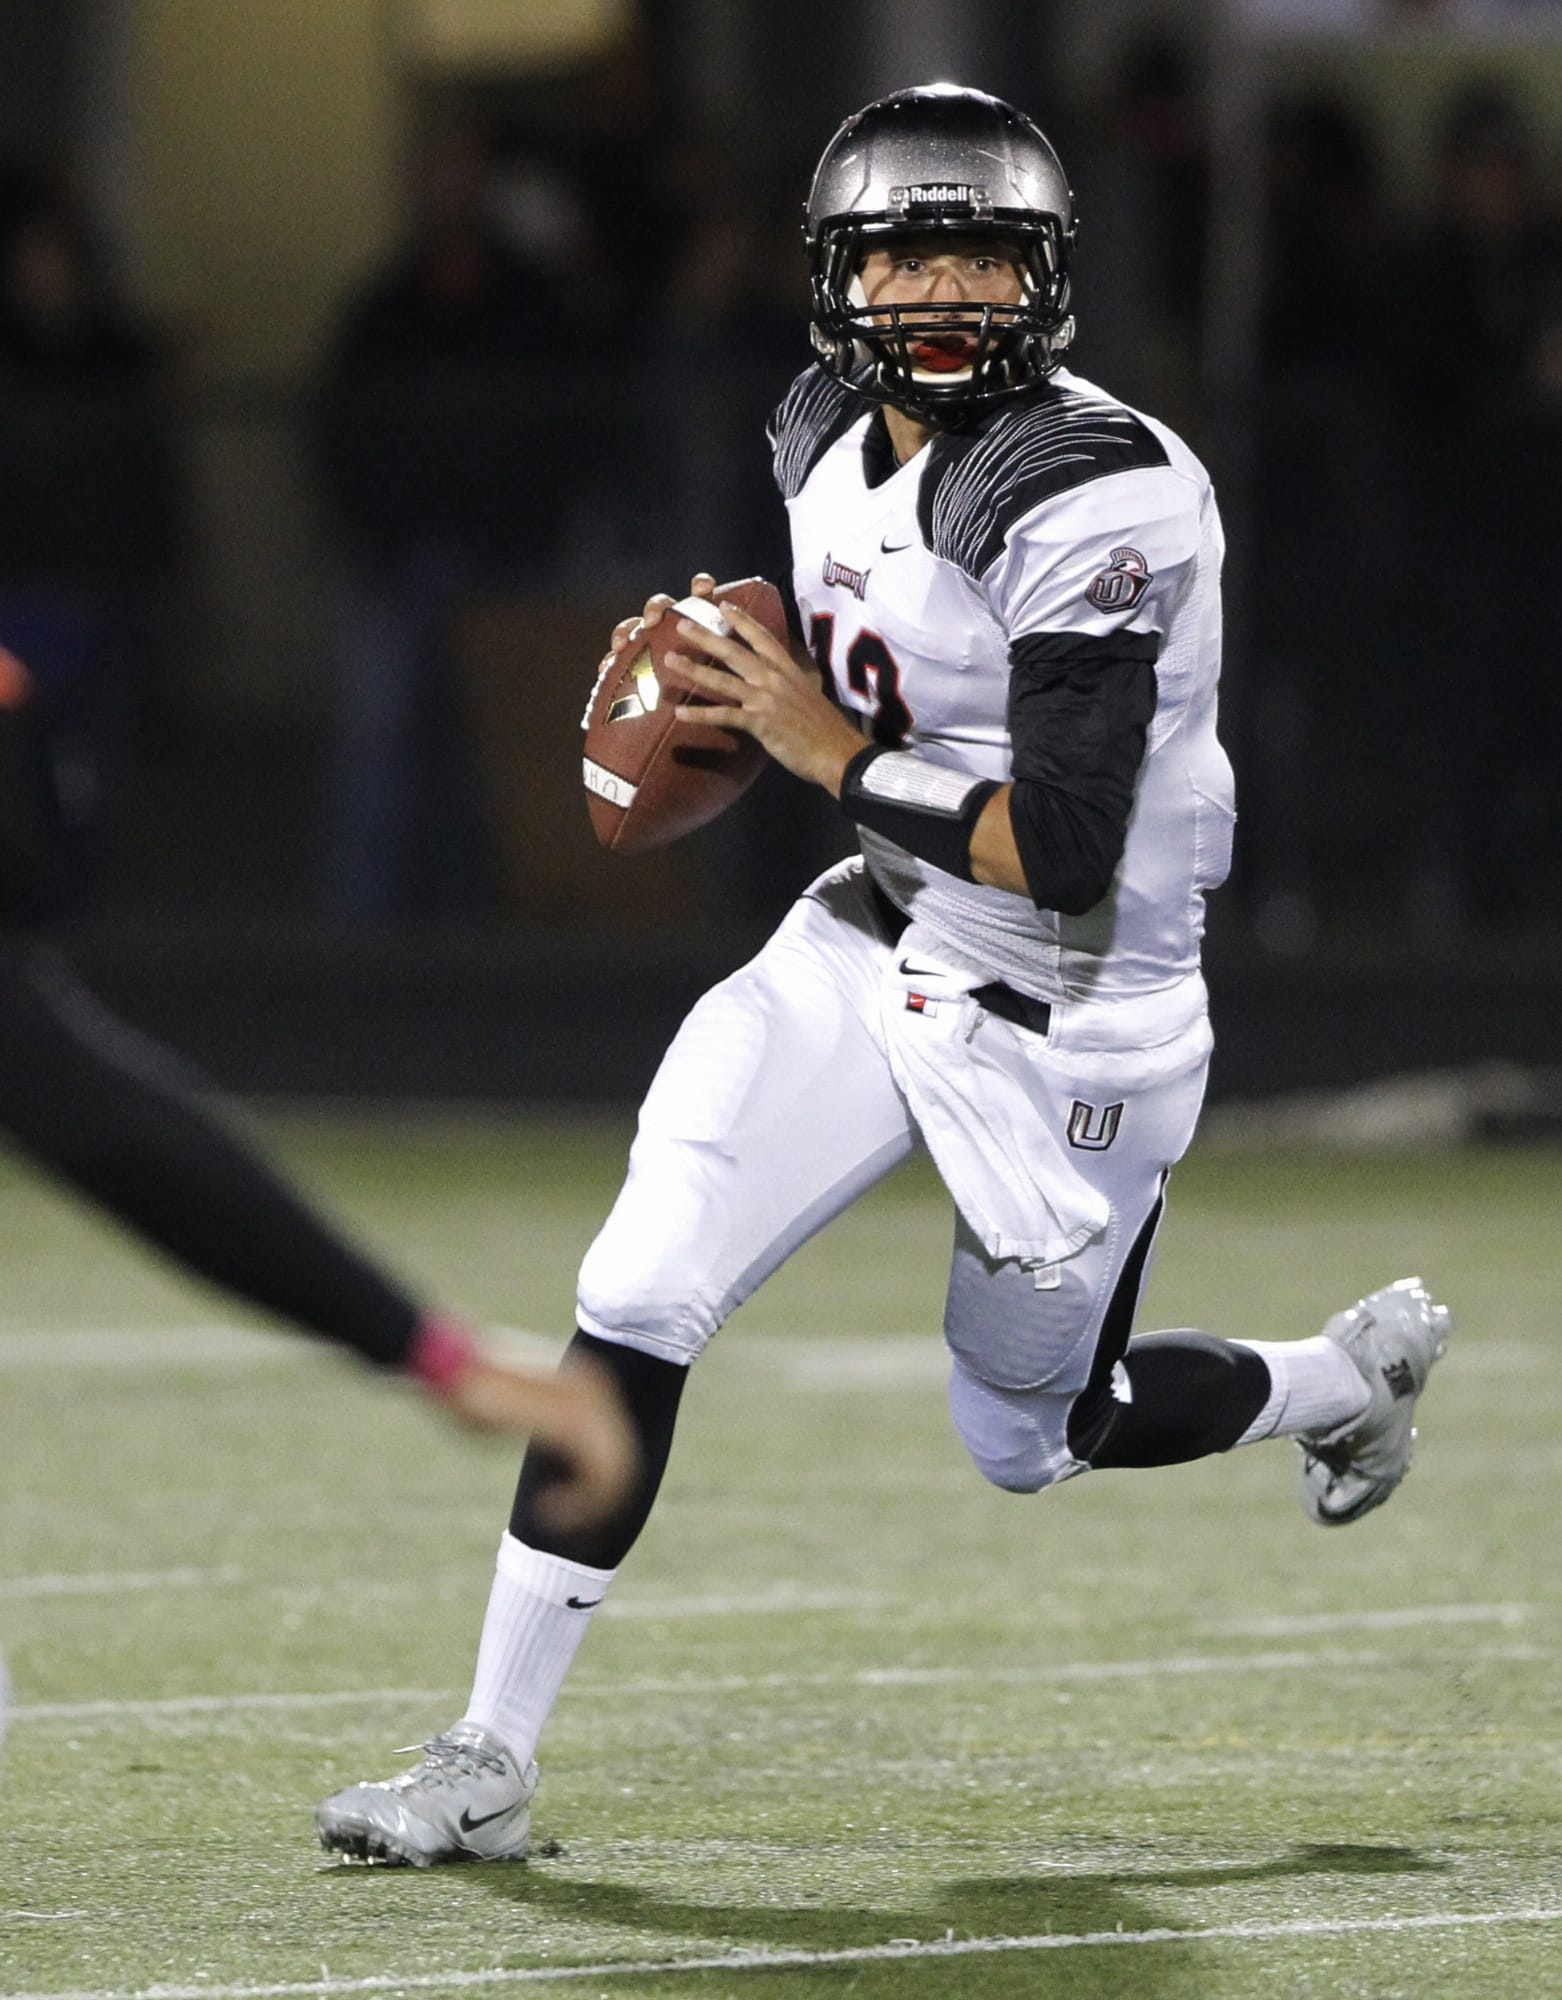 Union quarterback Nolan Henry rolls out against Battle Ground. (Steve Dipaola for the Columbian)